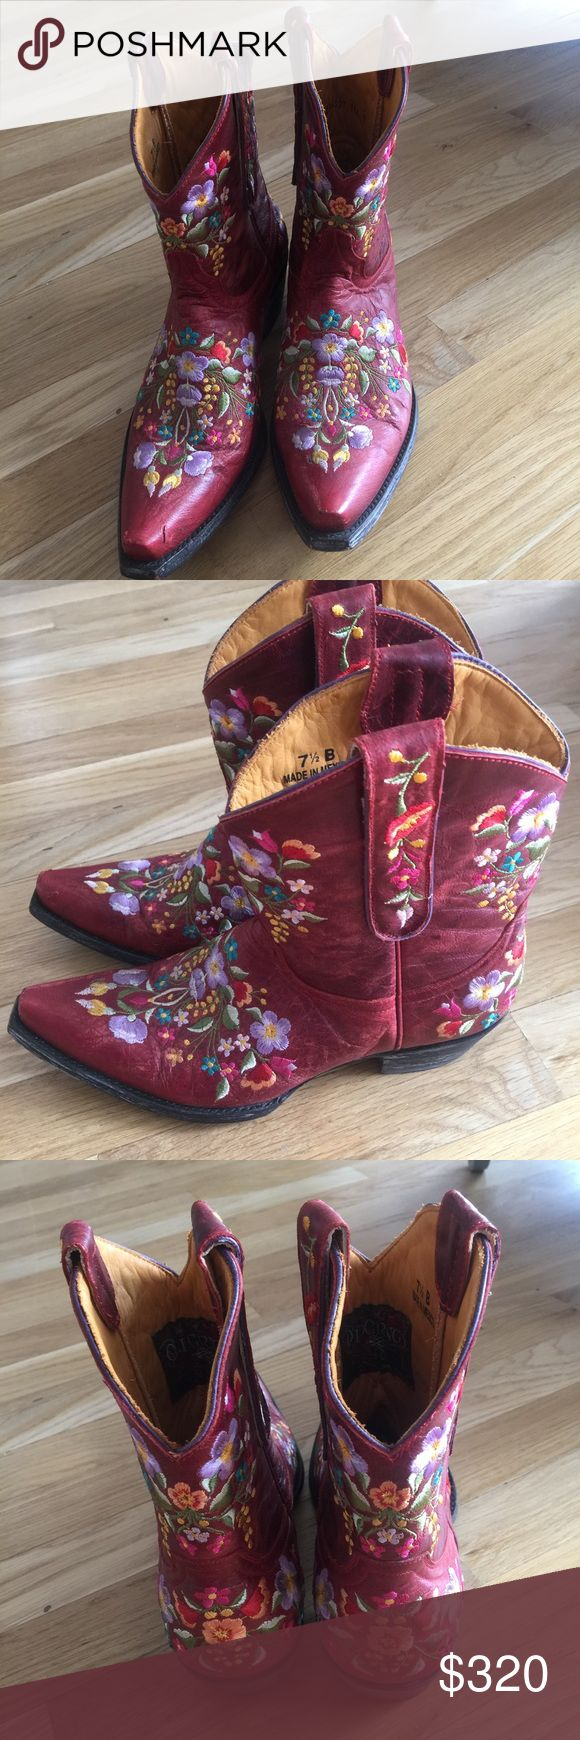 Old gringo embroidered leather boots These bots are So cool Vintage embroidered boots  Old Gringo  Great condition   I really hope some one buys them and loves and enjoys them     They're not my size🙁 Old Gringo Shoes